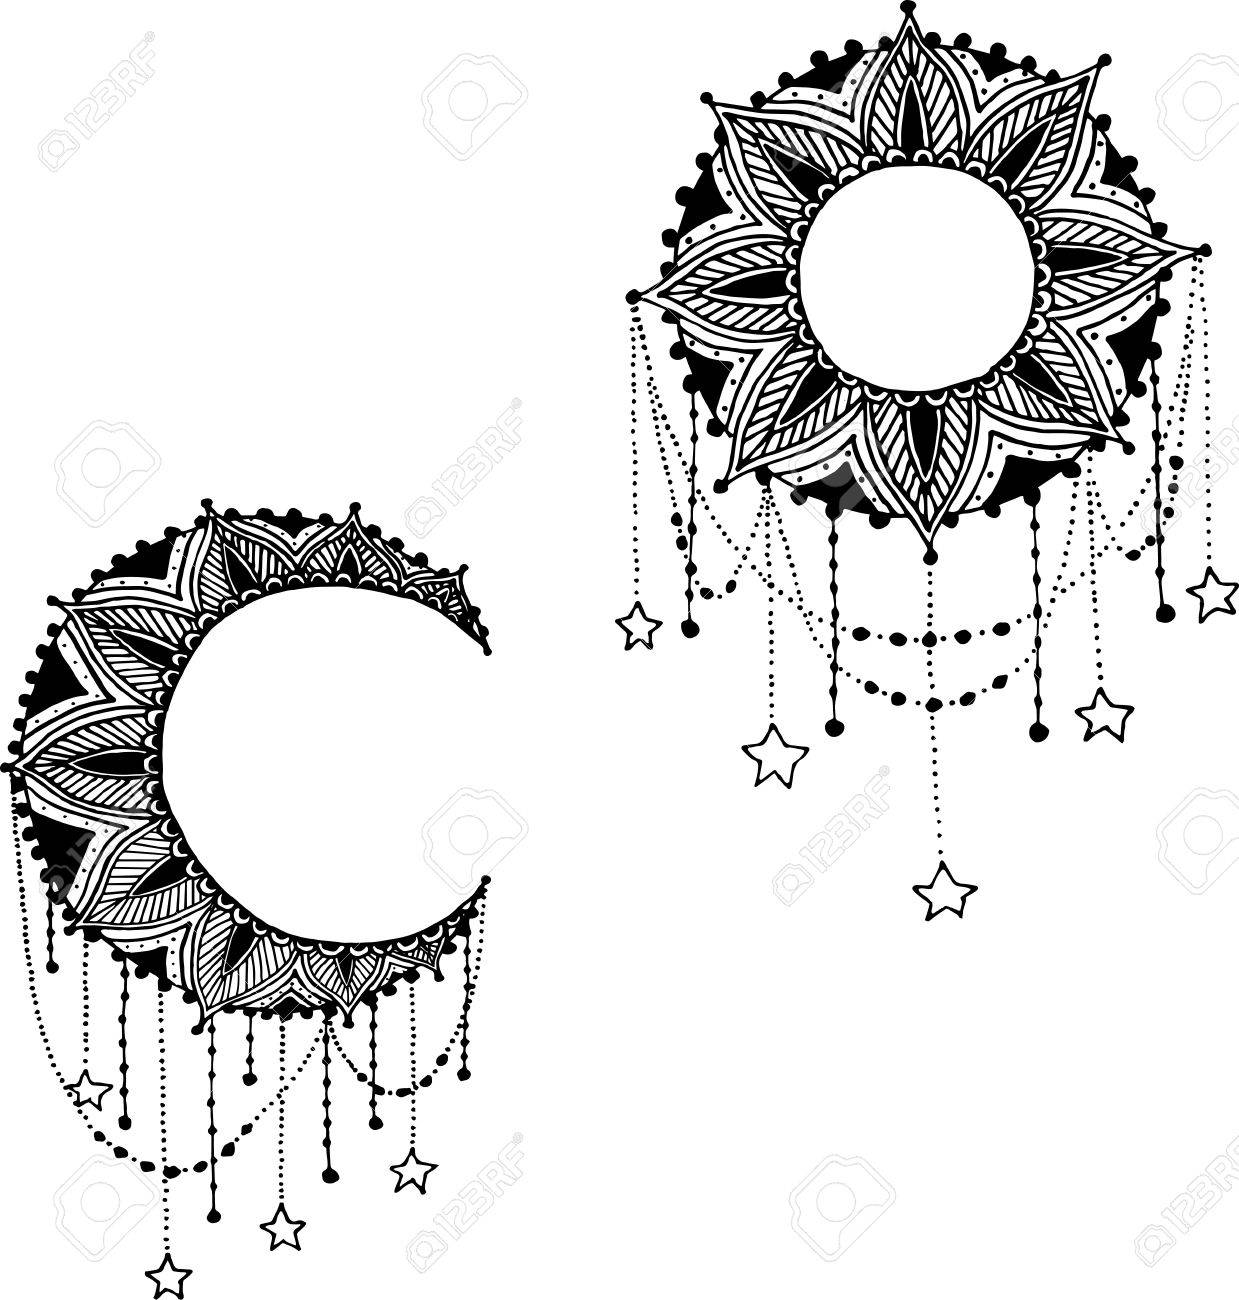 Hand-drawn mandala dreamcatcher with feathers. Ethnic illustration, tribal, American Indians traditional symbol. - 50571774